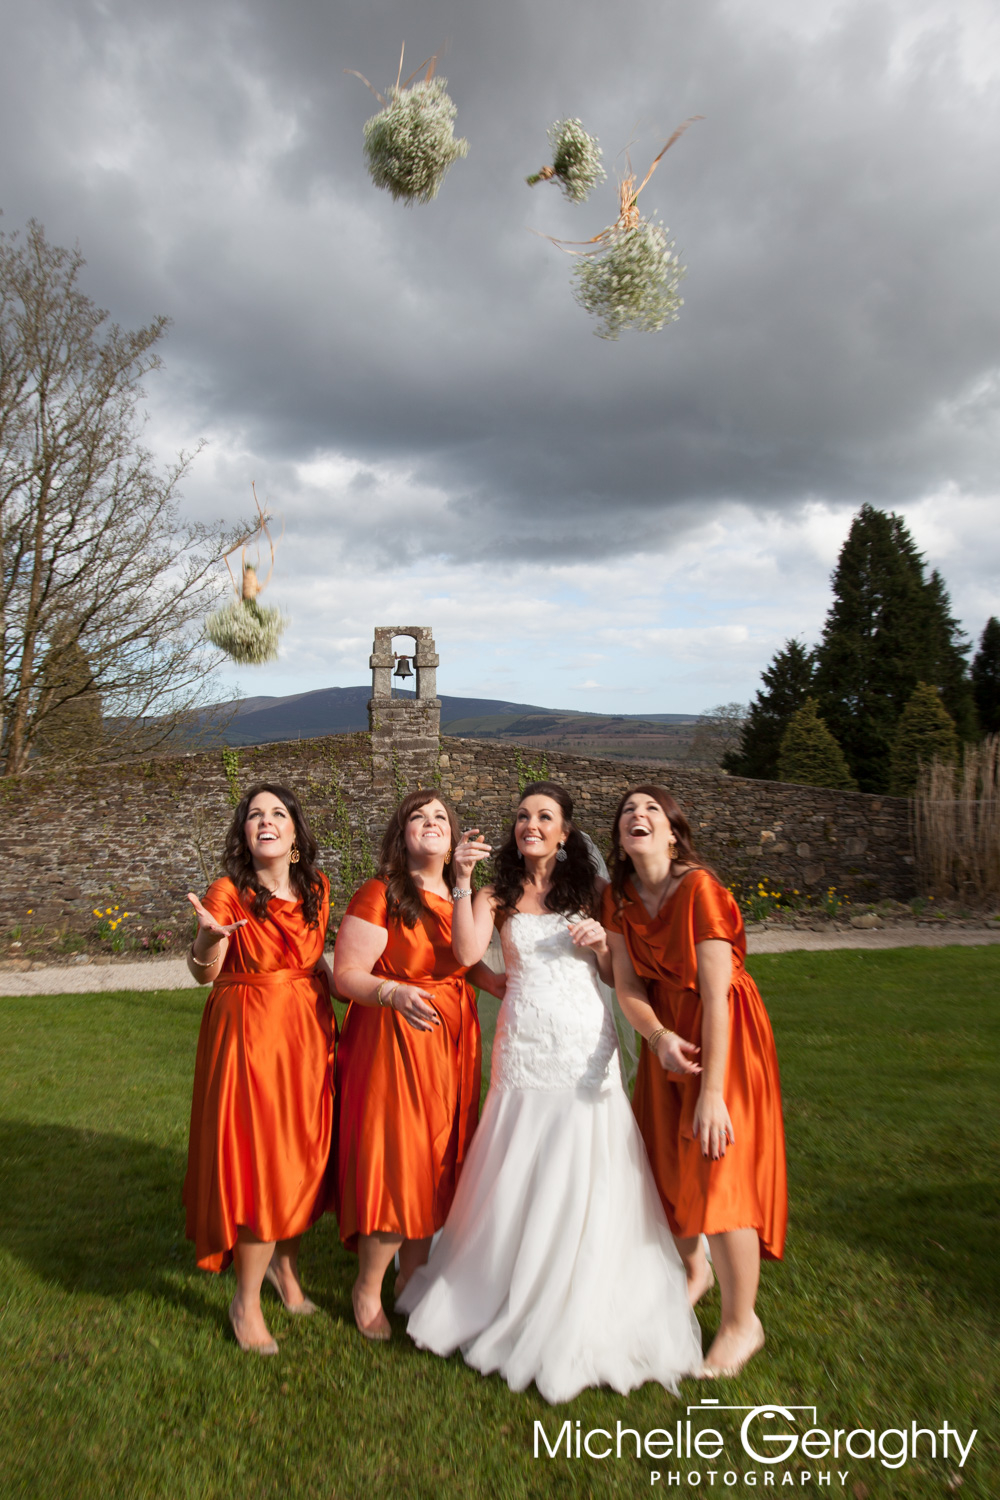 1691-Michelle Geraghty Photography_Mary & Connal-IMG_4077.jpg